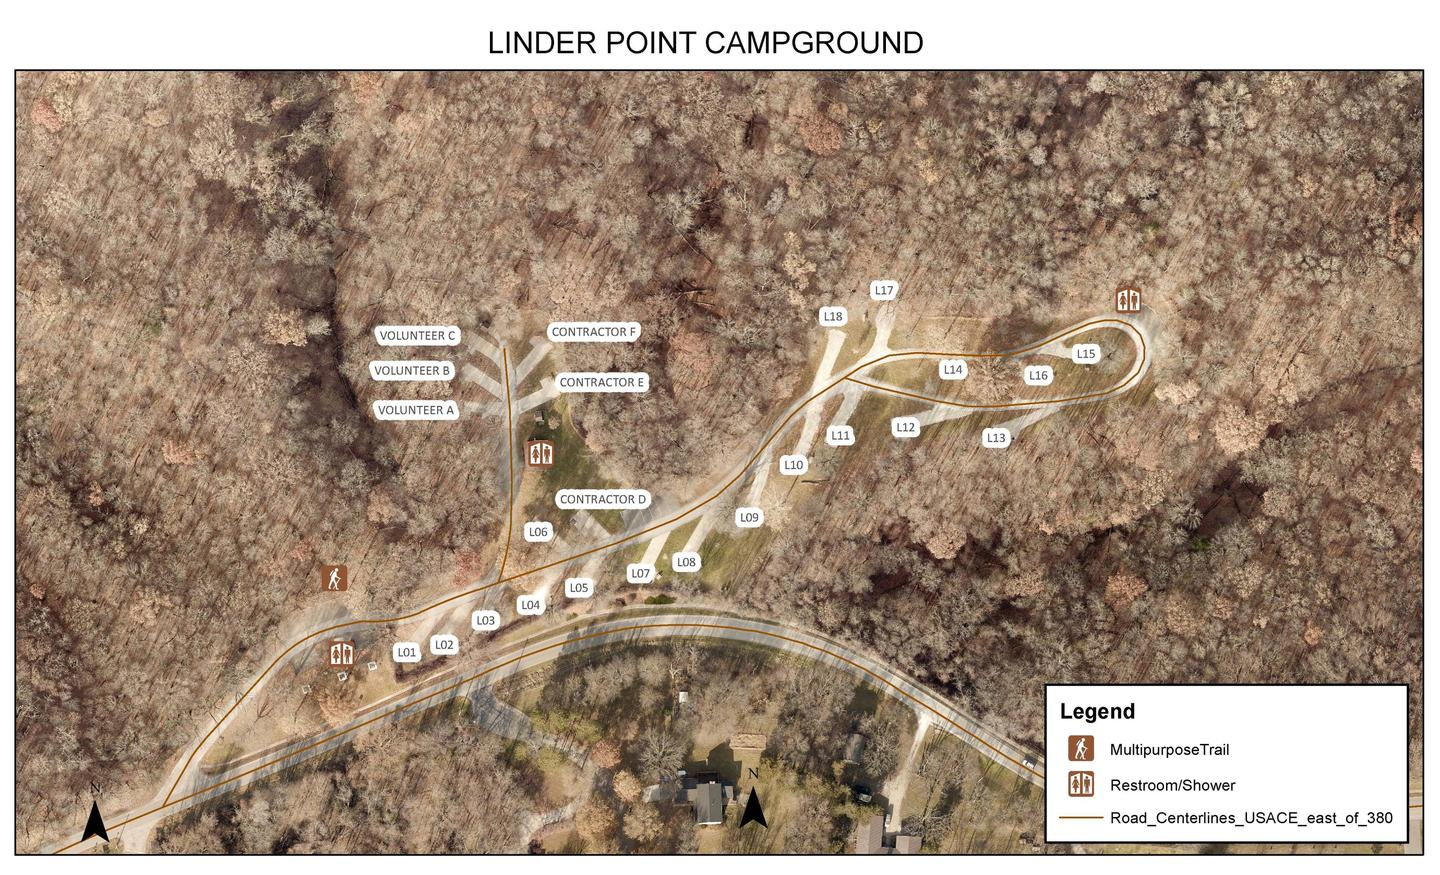 Linder Point Campground